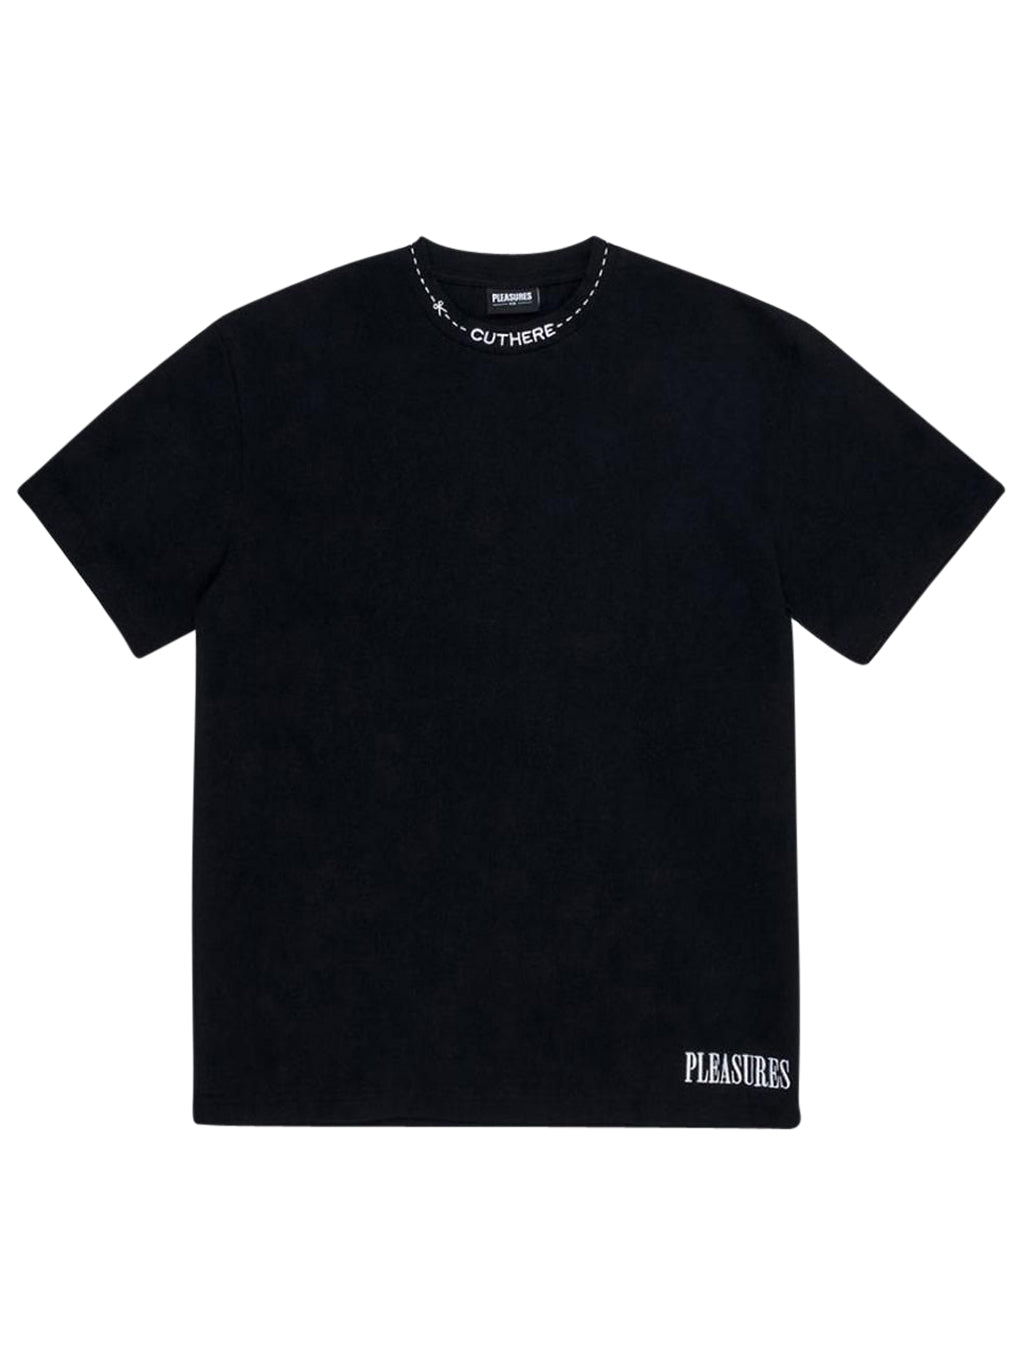 Black Cut Here Heavy Weight T-Shirt